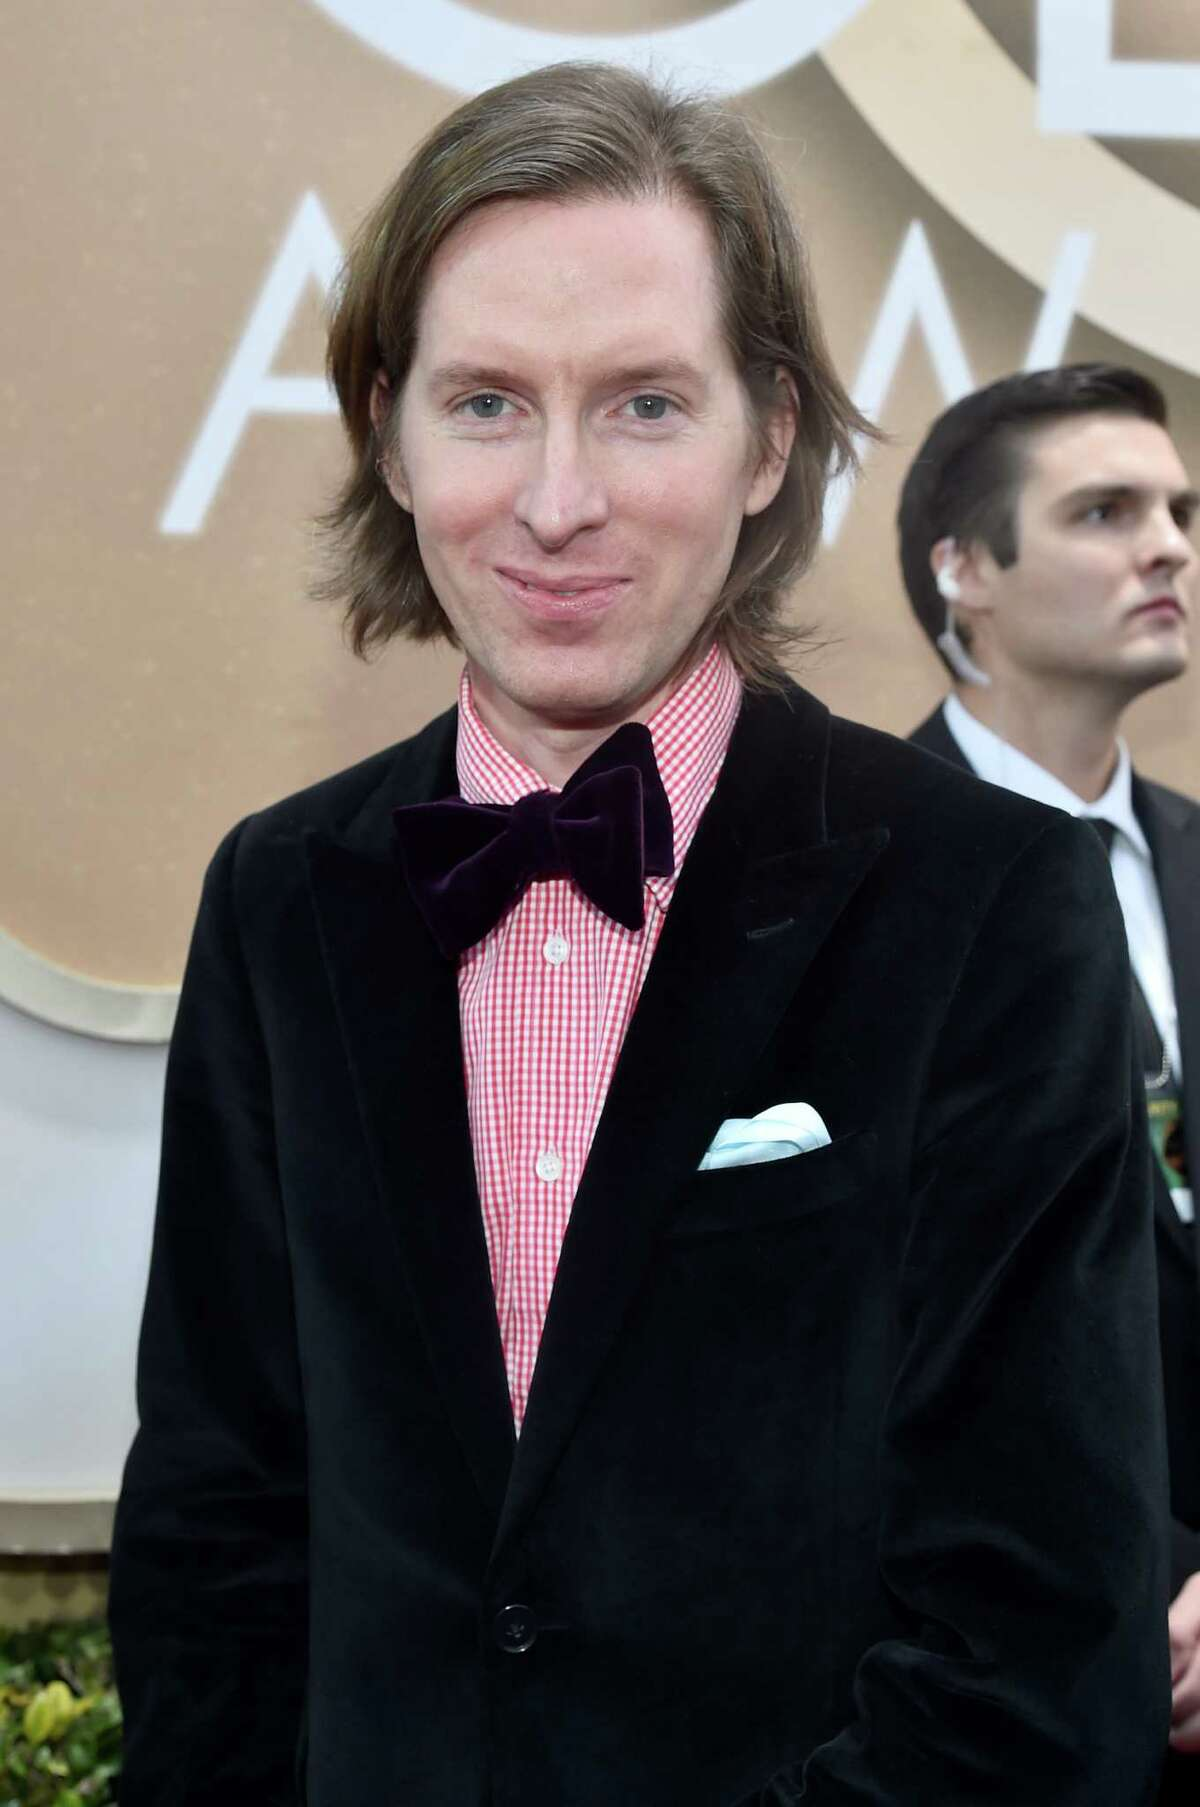 Wes Anderson , who is from Houston, won an award for Best Musical or Comedy Motion Picture for